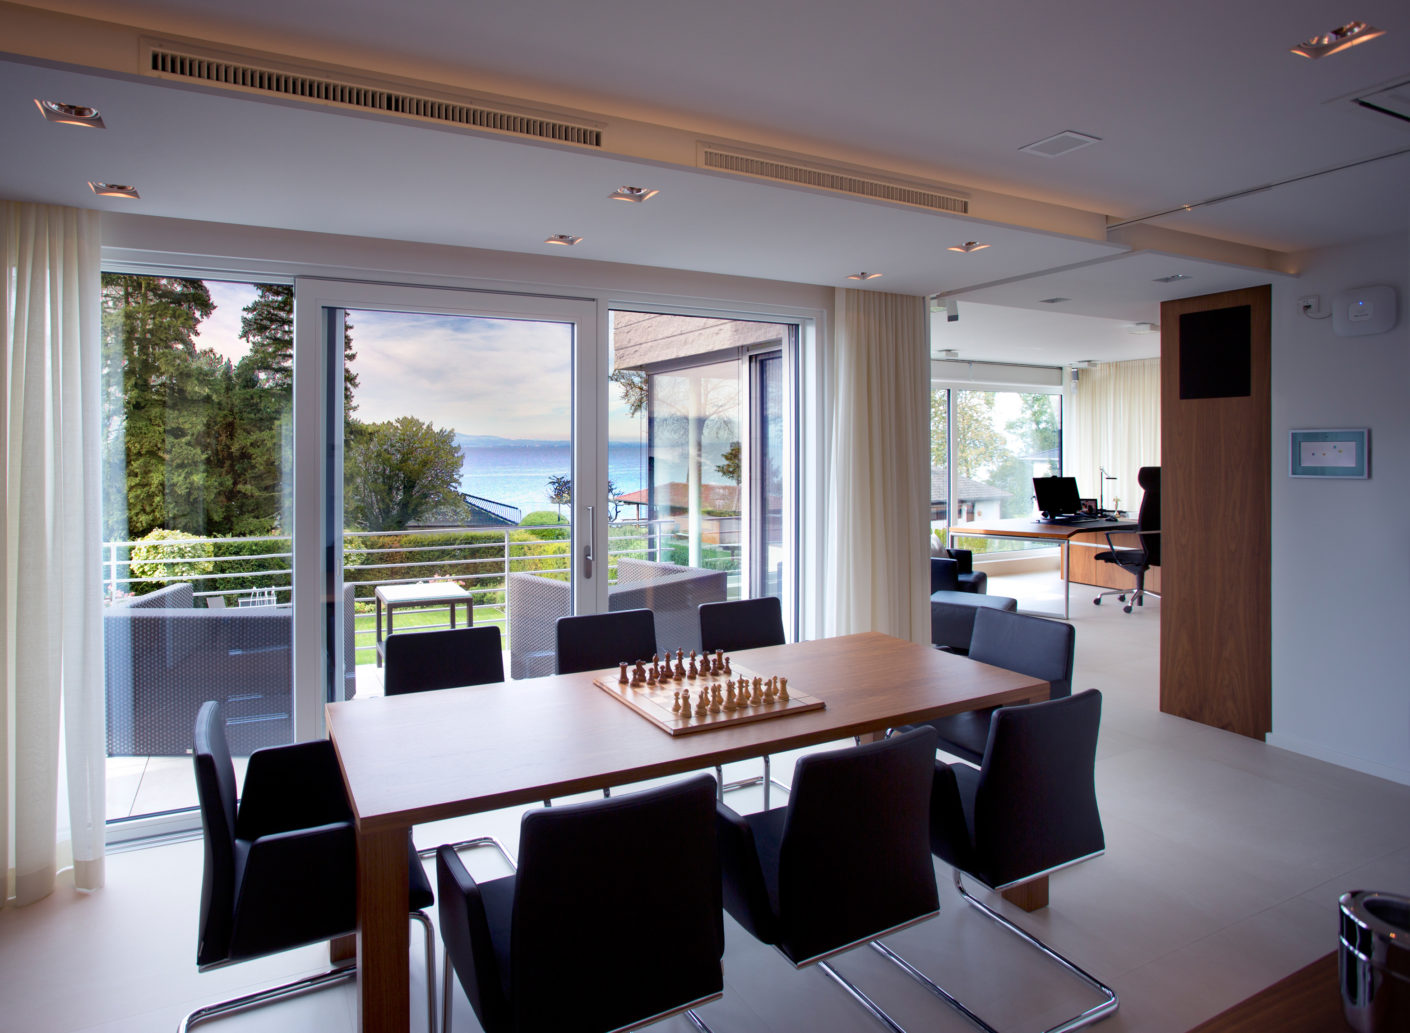 The spacious glass frontages of the new building offer a panoramic view of the nearby Lake Constance.